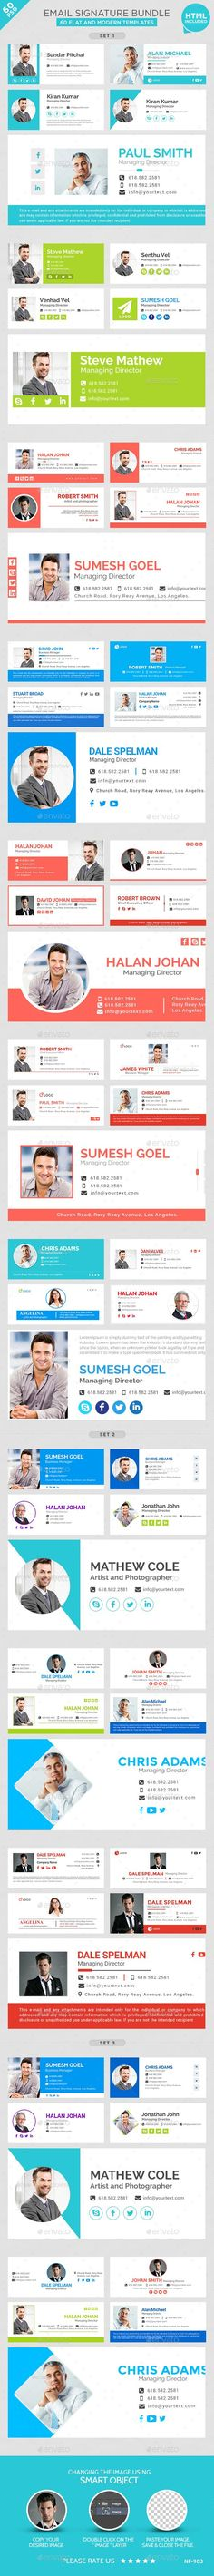 Email Signature - 5 Designs - HTML Files Included Email - cover letter signature